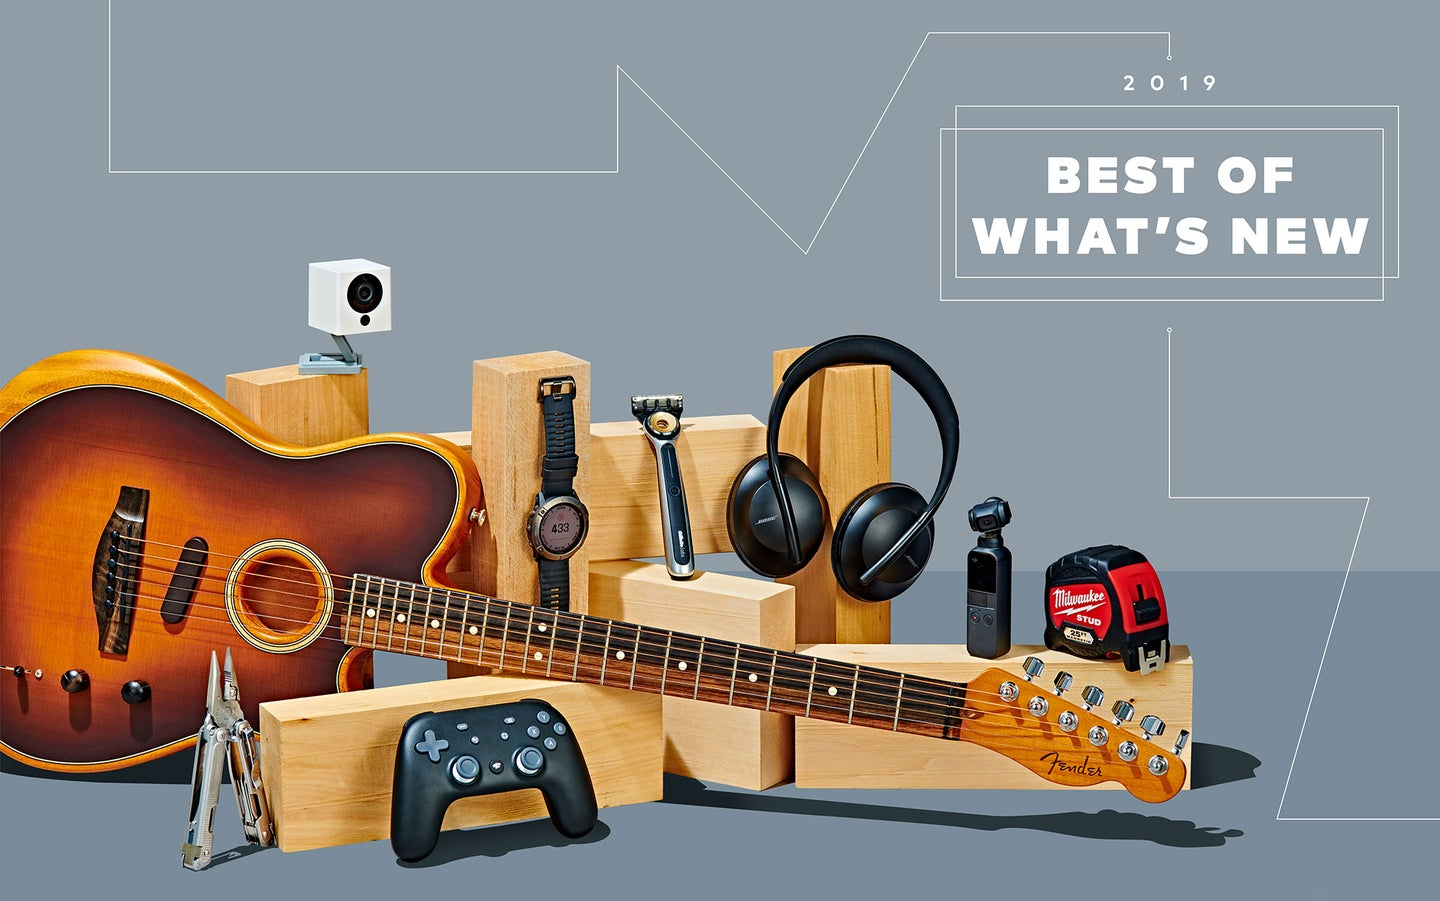 100 greatest innovations of 2019: Best of What's New